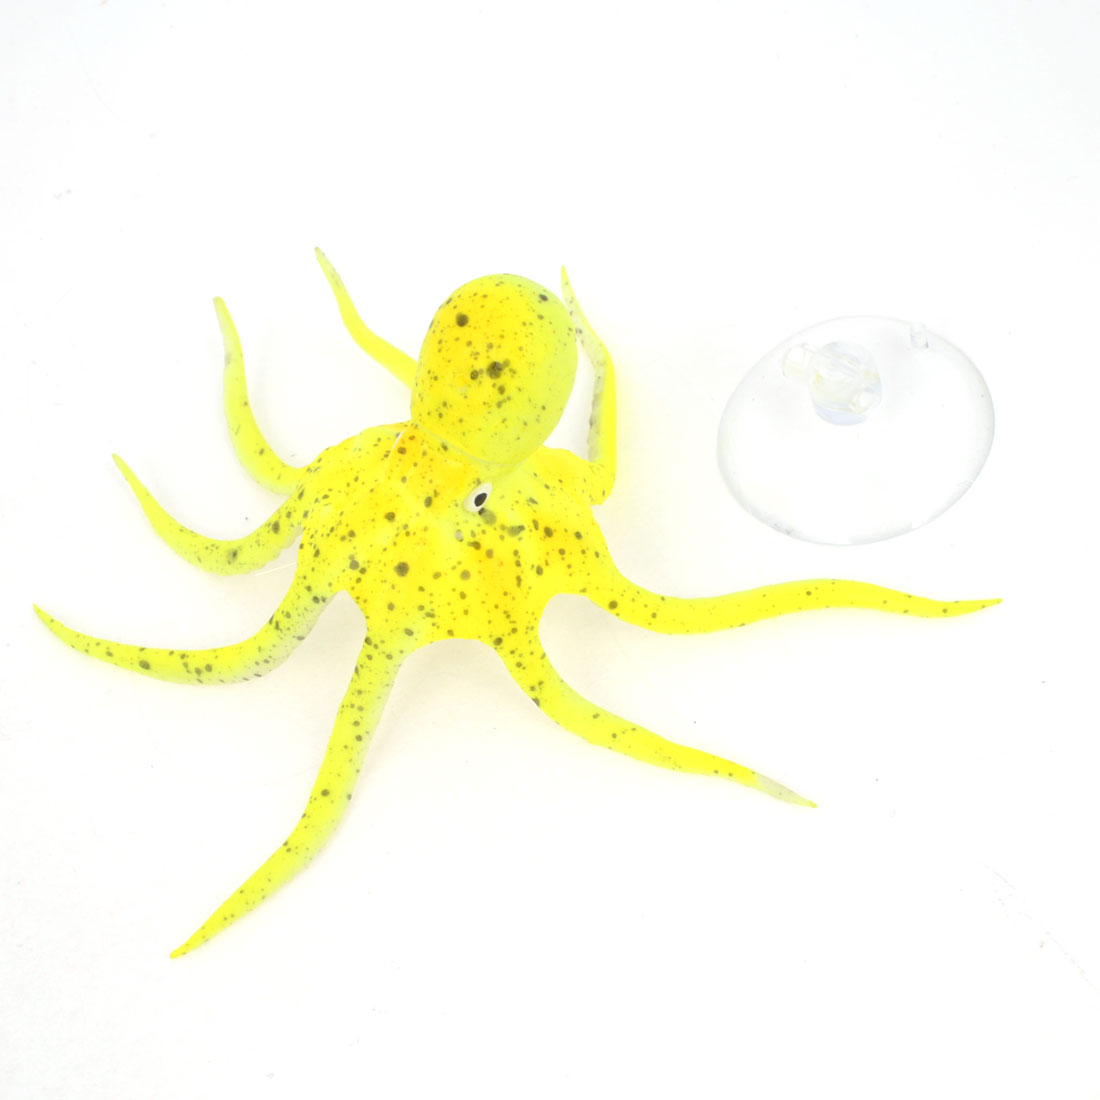 Aquarium Yellow Silicone Artificial Octopus Decoration w Suction Cup